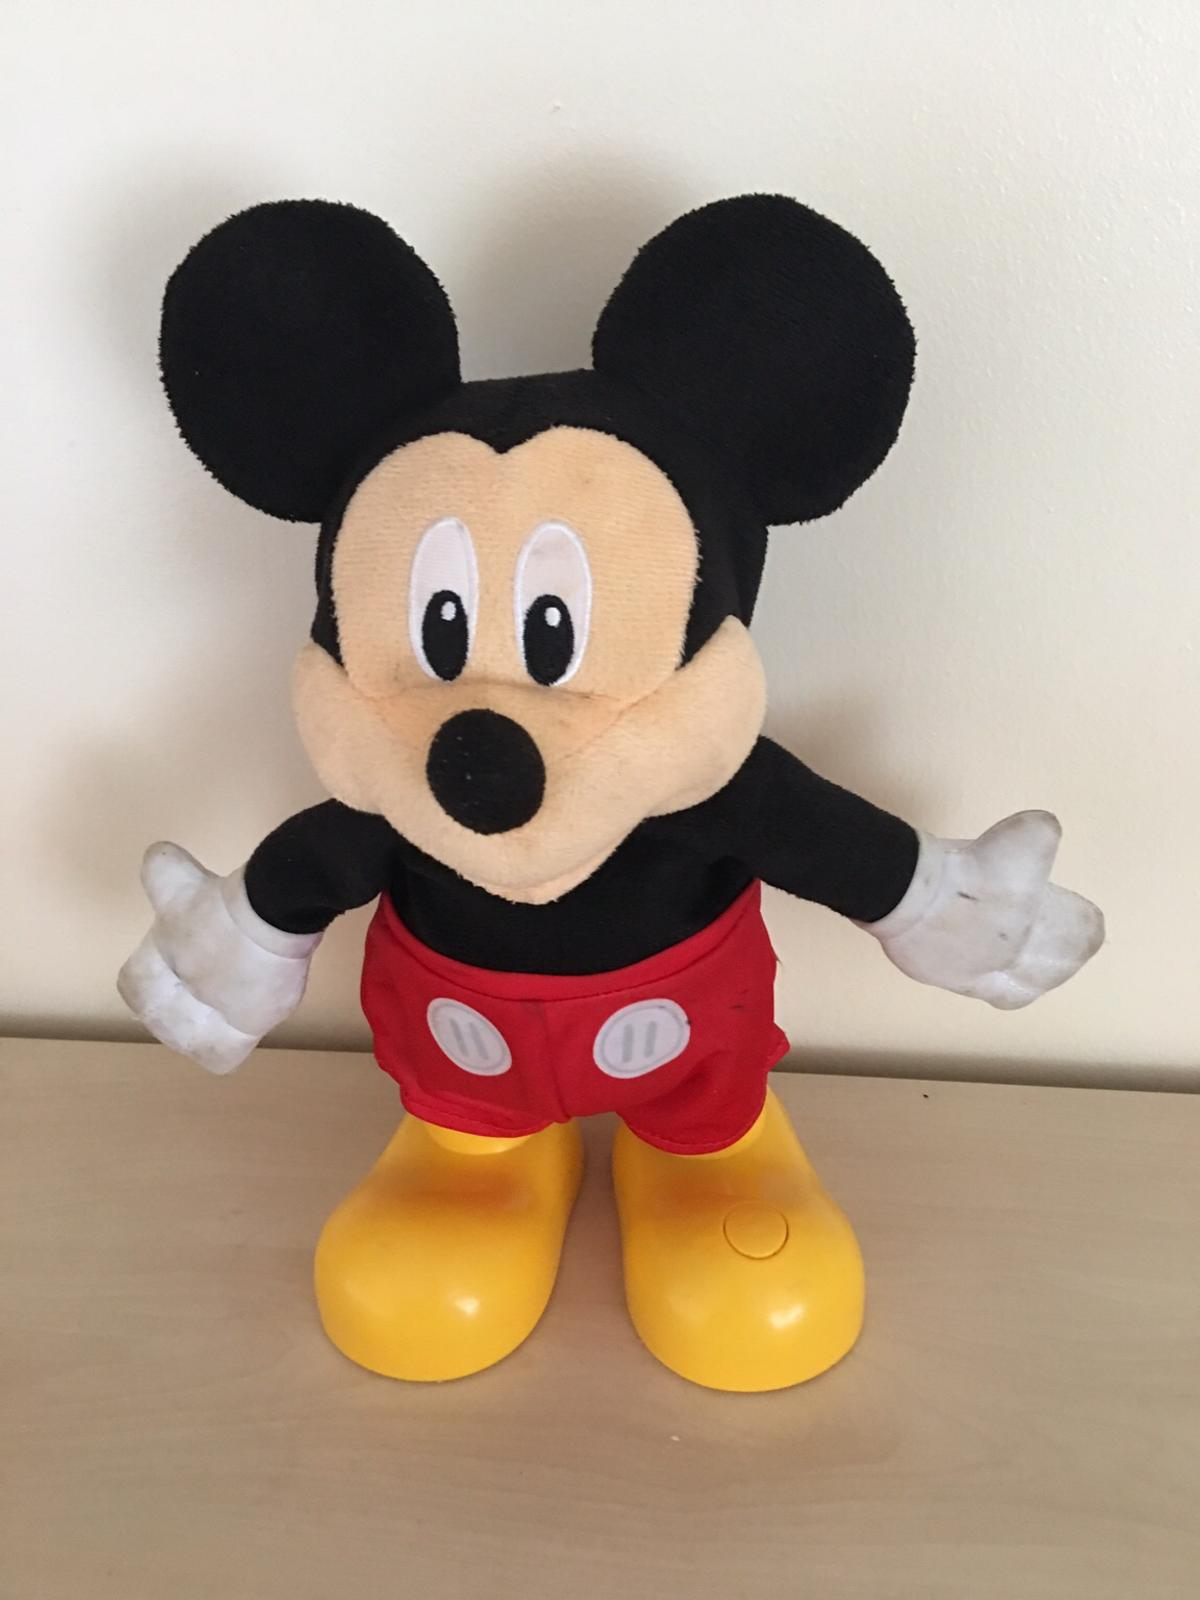 Mickey Mouse In North East Derbyshire For 1 50 For Sale Shpock